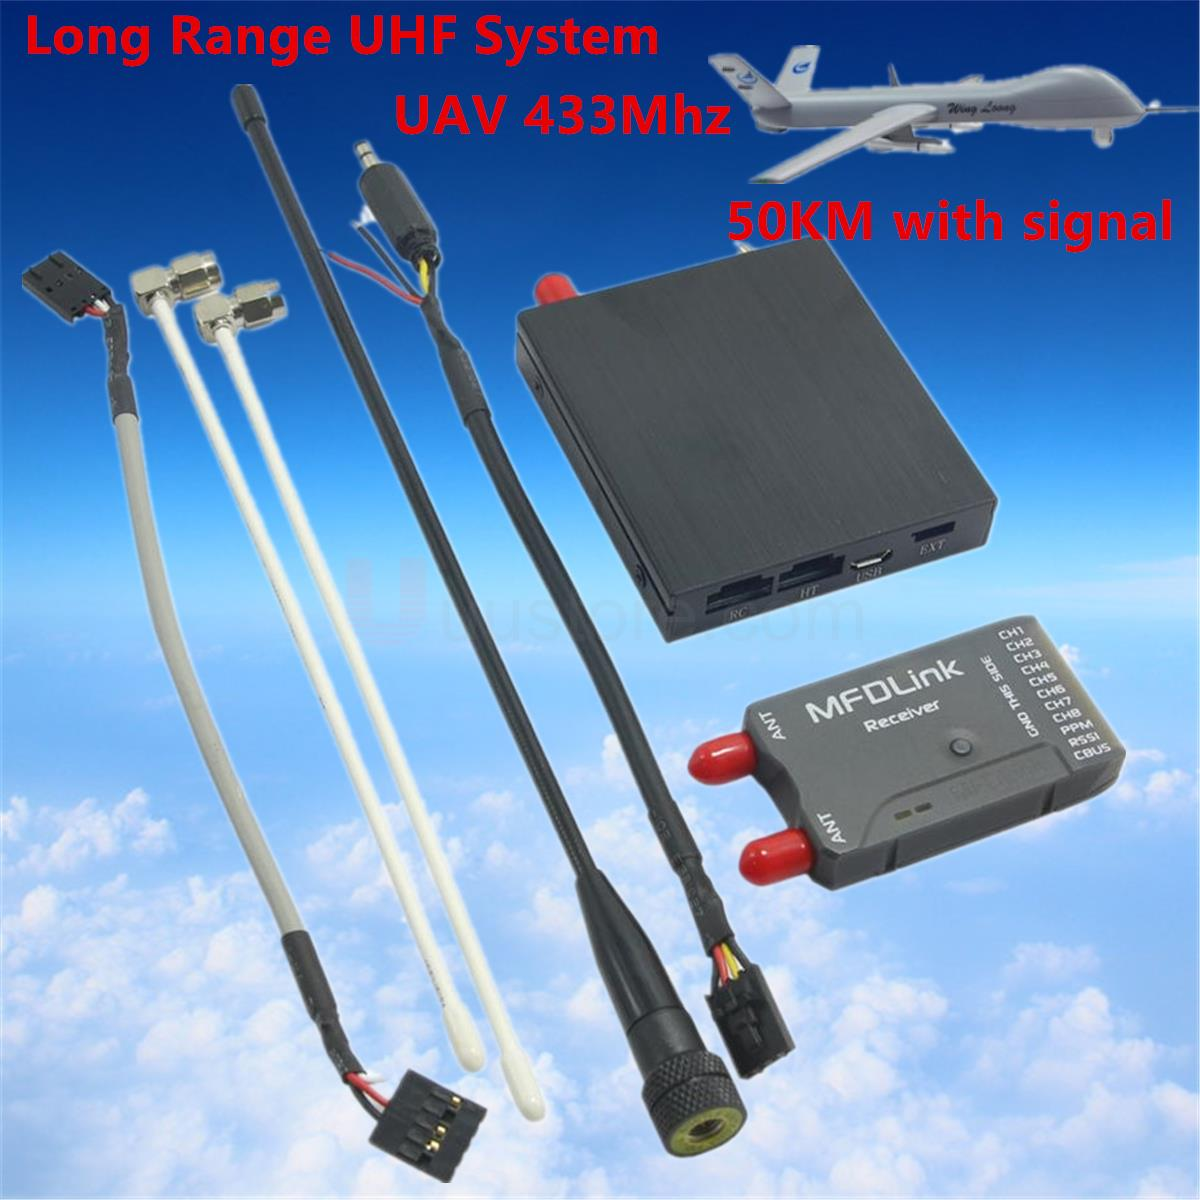 50KM Long Range MFDLink Rlink 433Mhz 16CH 1W RC FPV UHF System Transmitter w/8 Channel Receiver TX+RX Set For high fpv quality 50km long range fpv sets for fixed wings